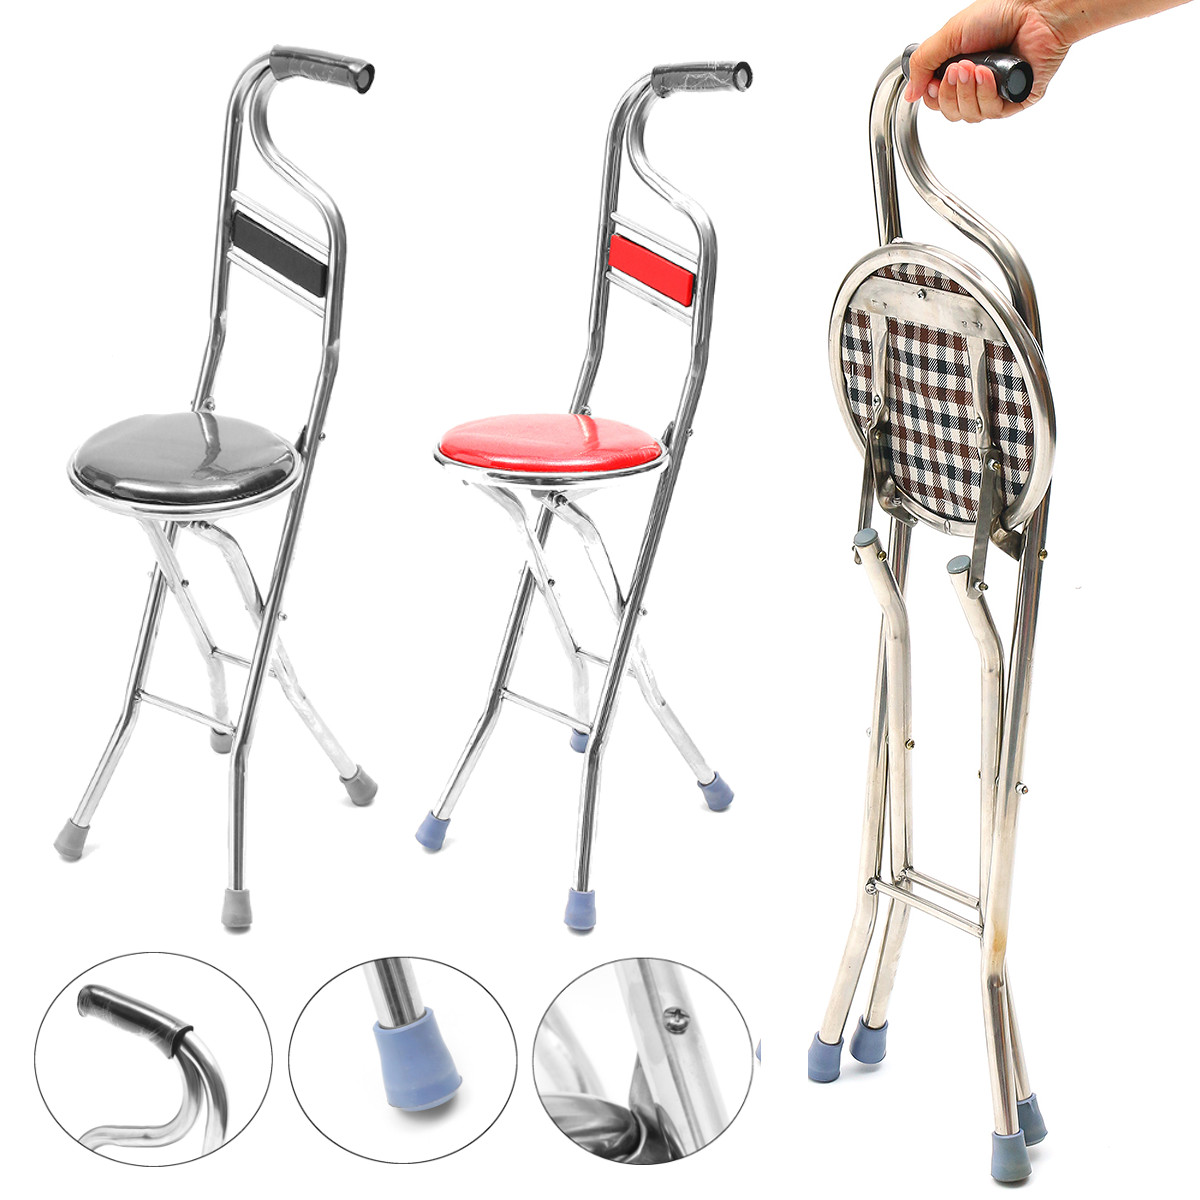 walking stick chair folding lounge chairs for outside 2 in 1 stainless steel portable seat stool travel cane elderly care walmart com